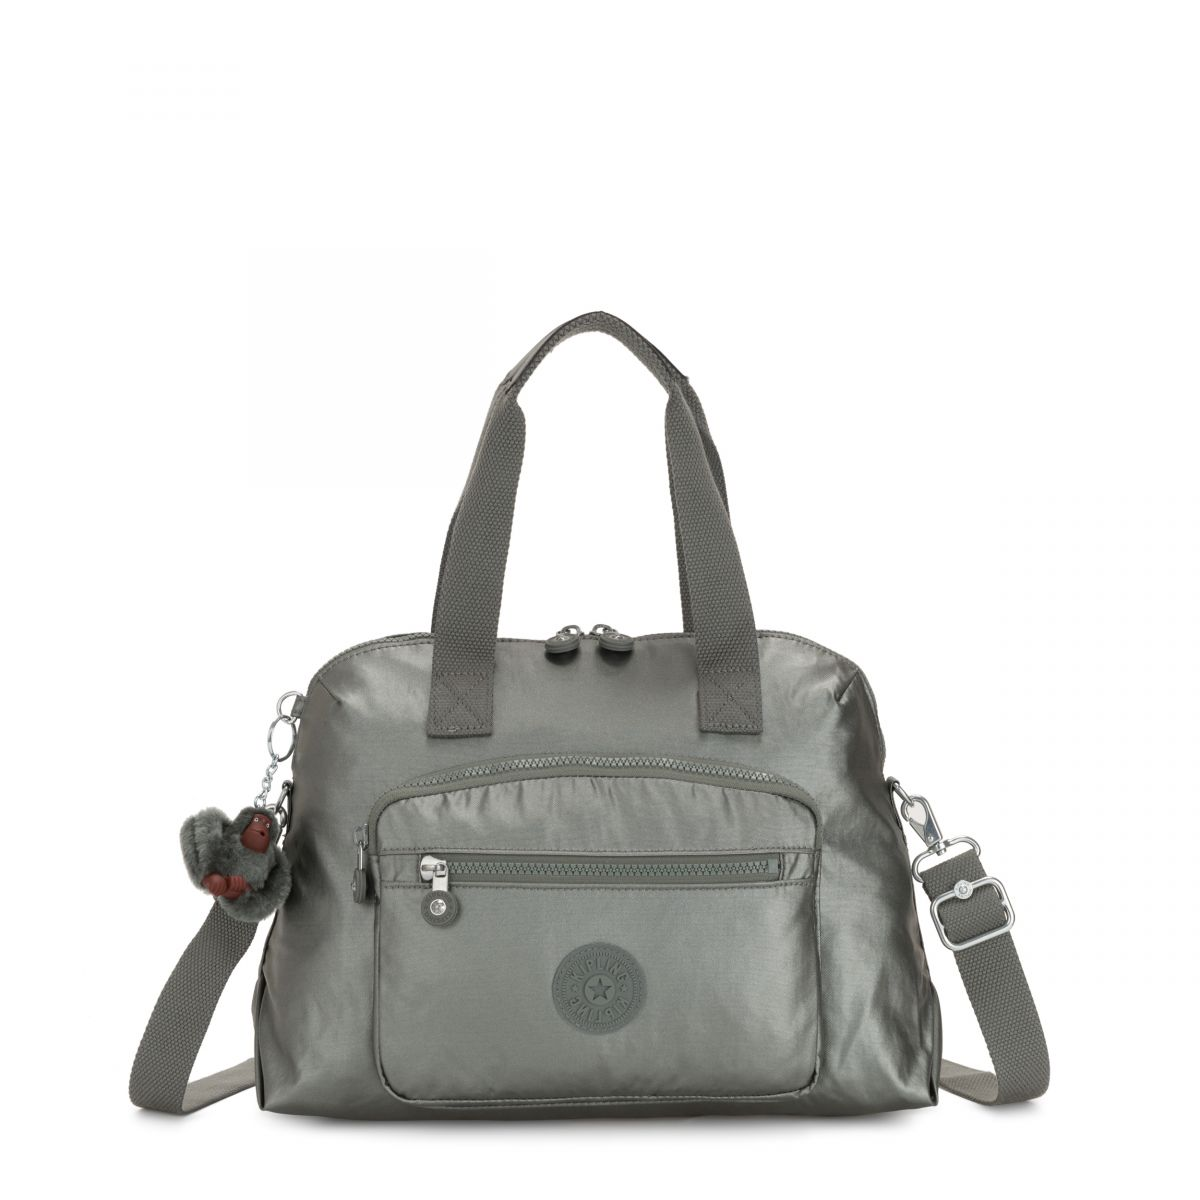 Avispón Locura Preguntarse  TRACY | Medium tote with removable shoulder strap | Kipling INT